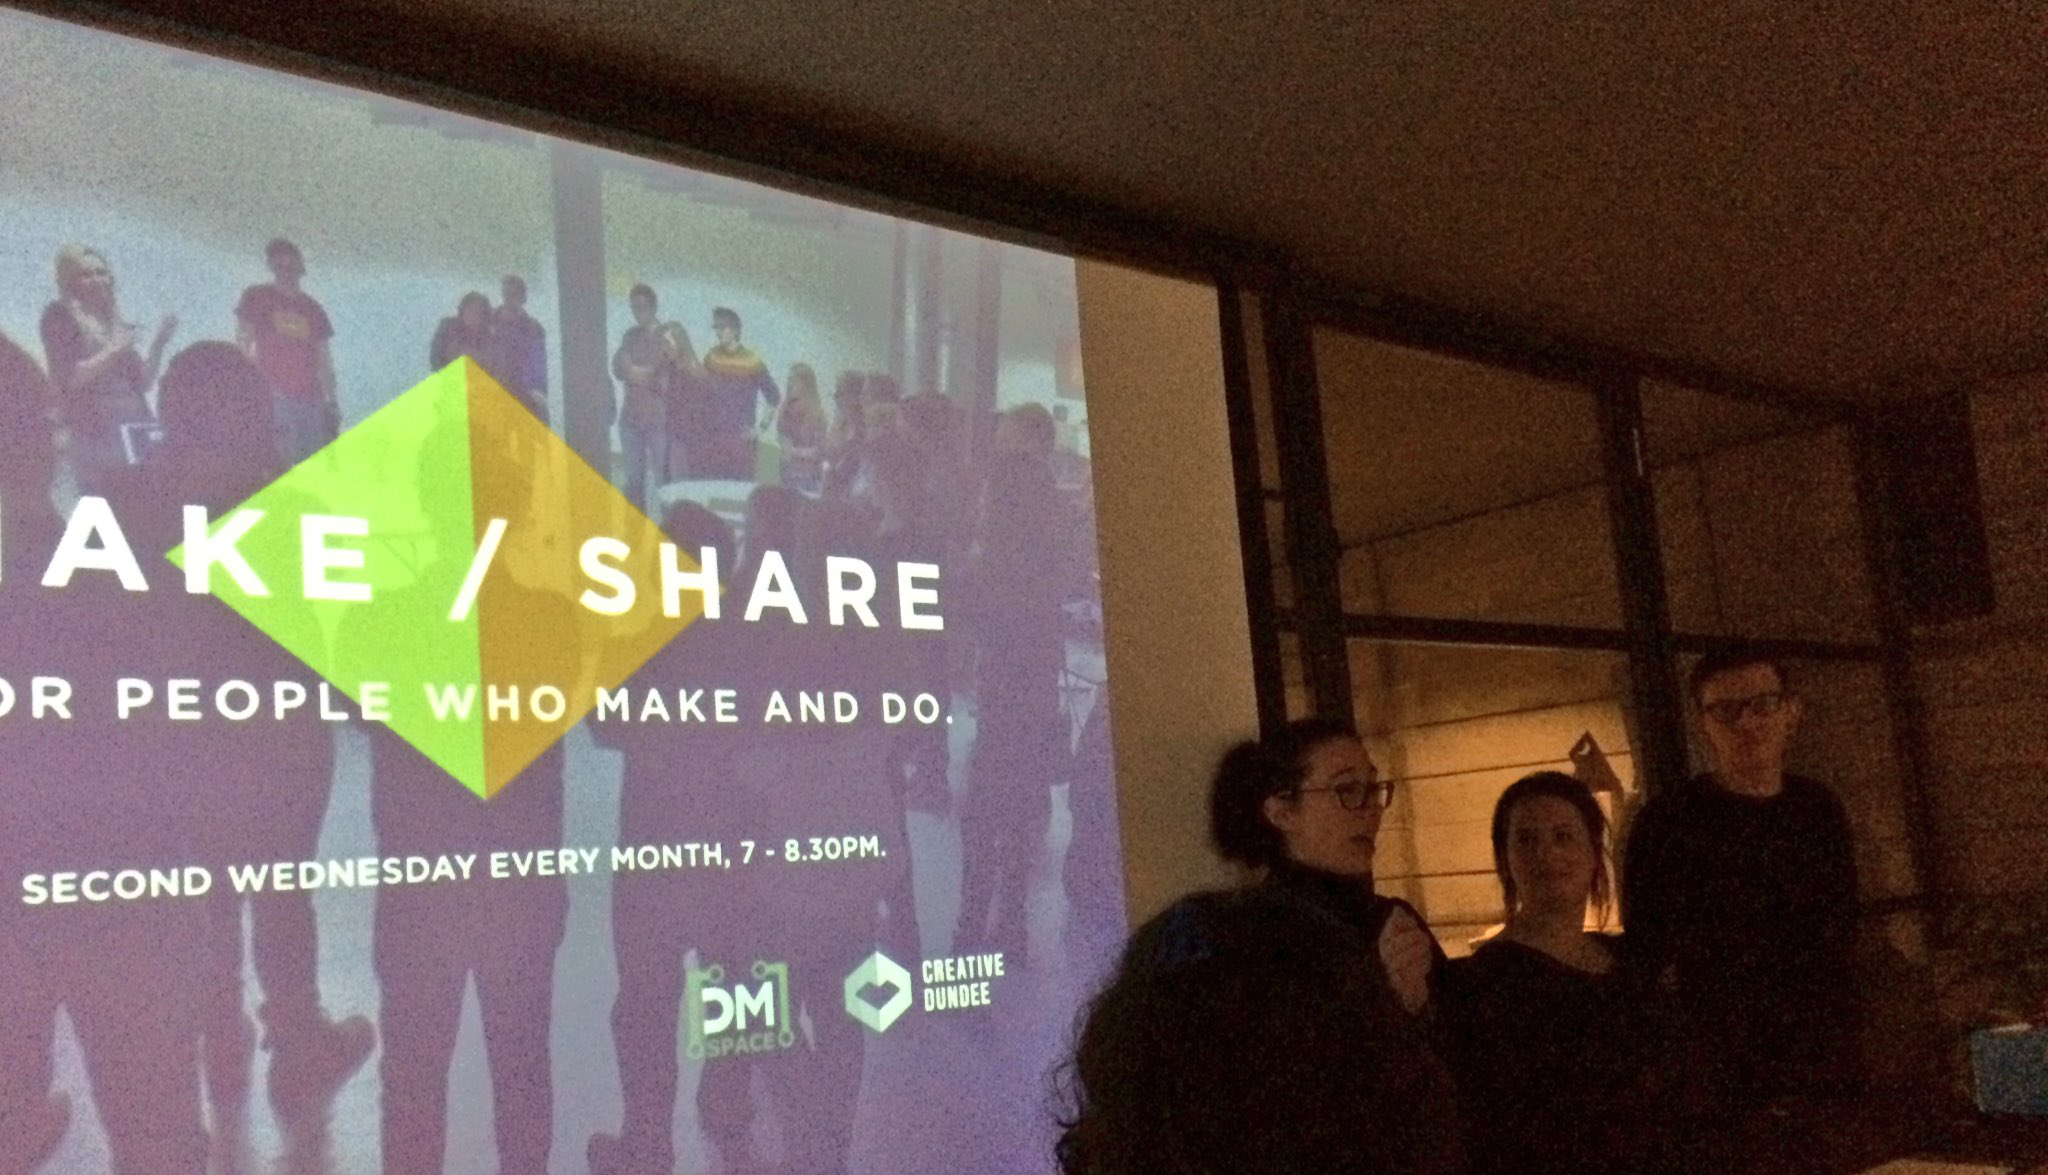 A fascinating and diverse #makeshare event. As usual. https://t.co/U04oCJvDiQ